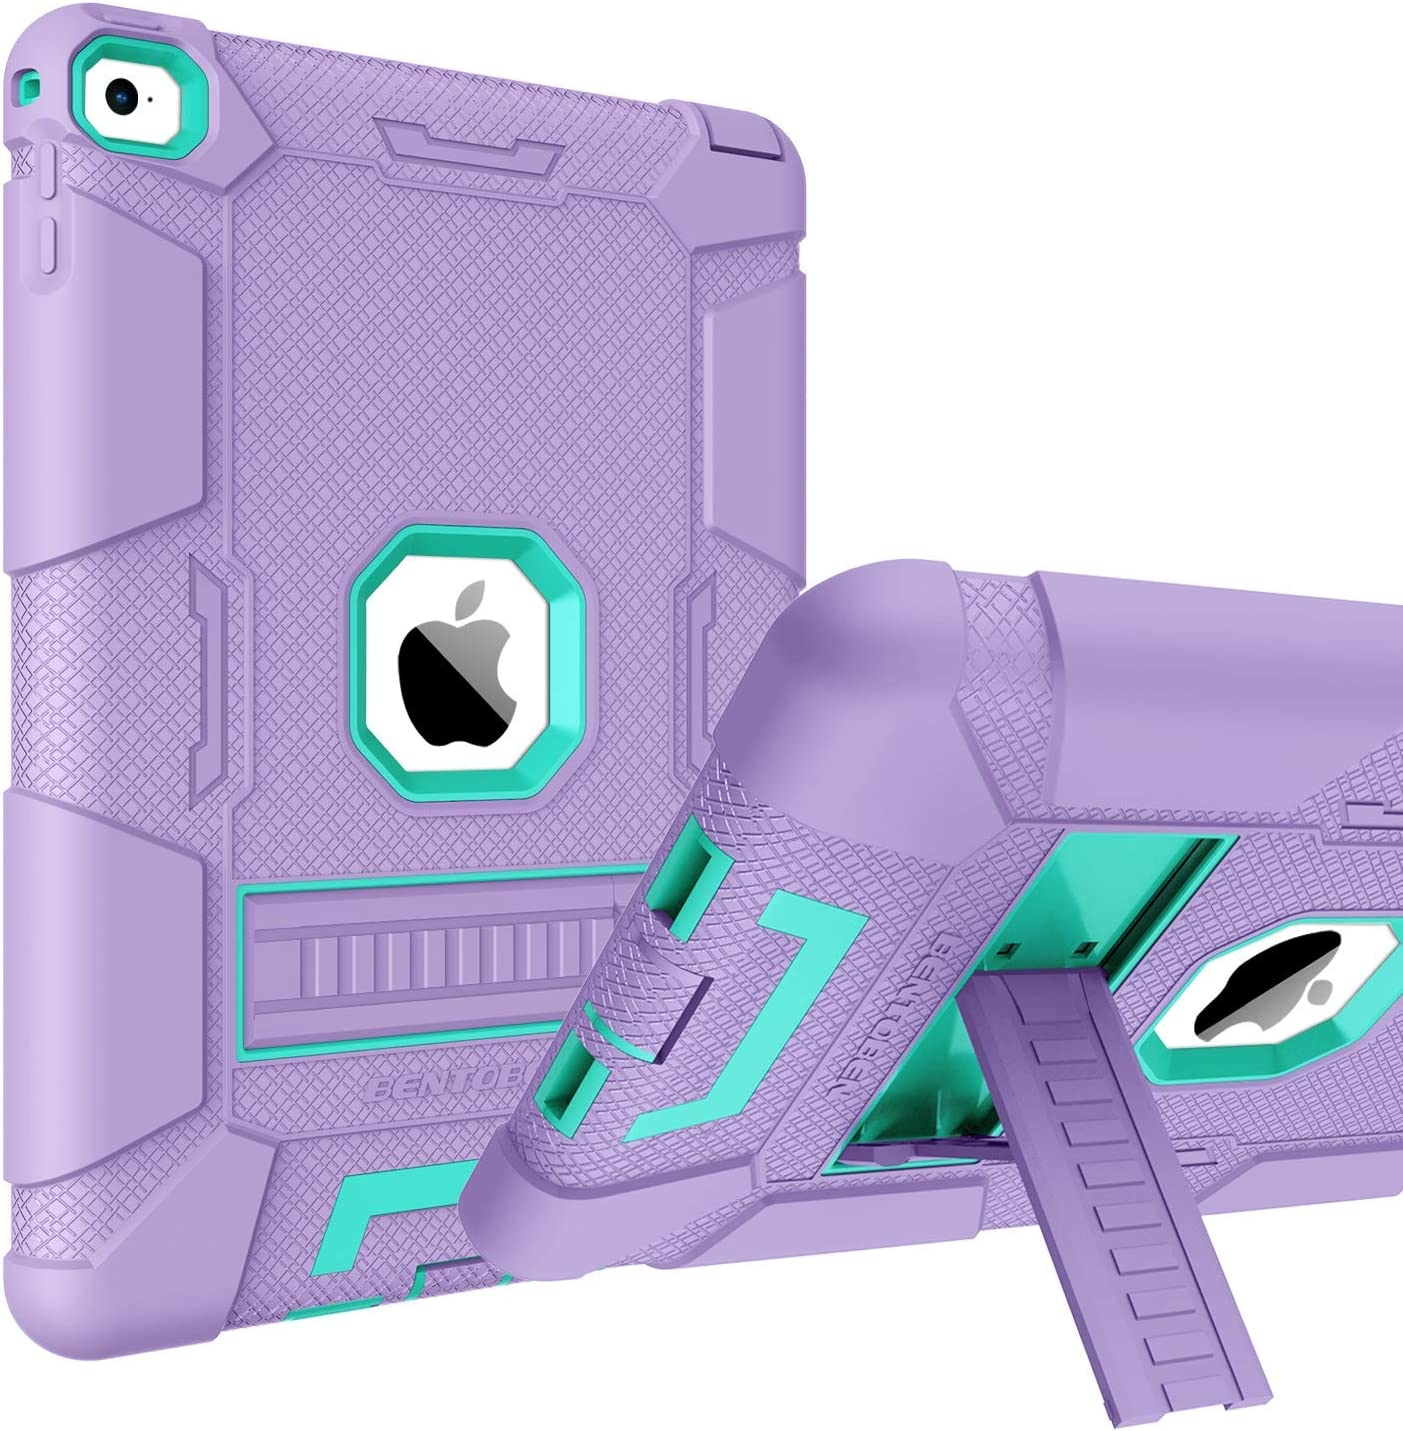 BENTOBEN Case for iPad Air 2, Hybrid Shockproof Cases with Kickstand Rugged Triple-Layer Shock Resistant Drop Proof Protective Tablet Cover for iPad Air 2 (A1566 A1567) 2014 Released, Purple/Green